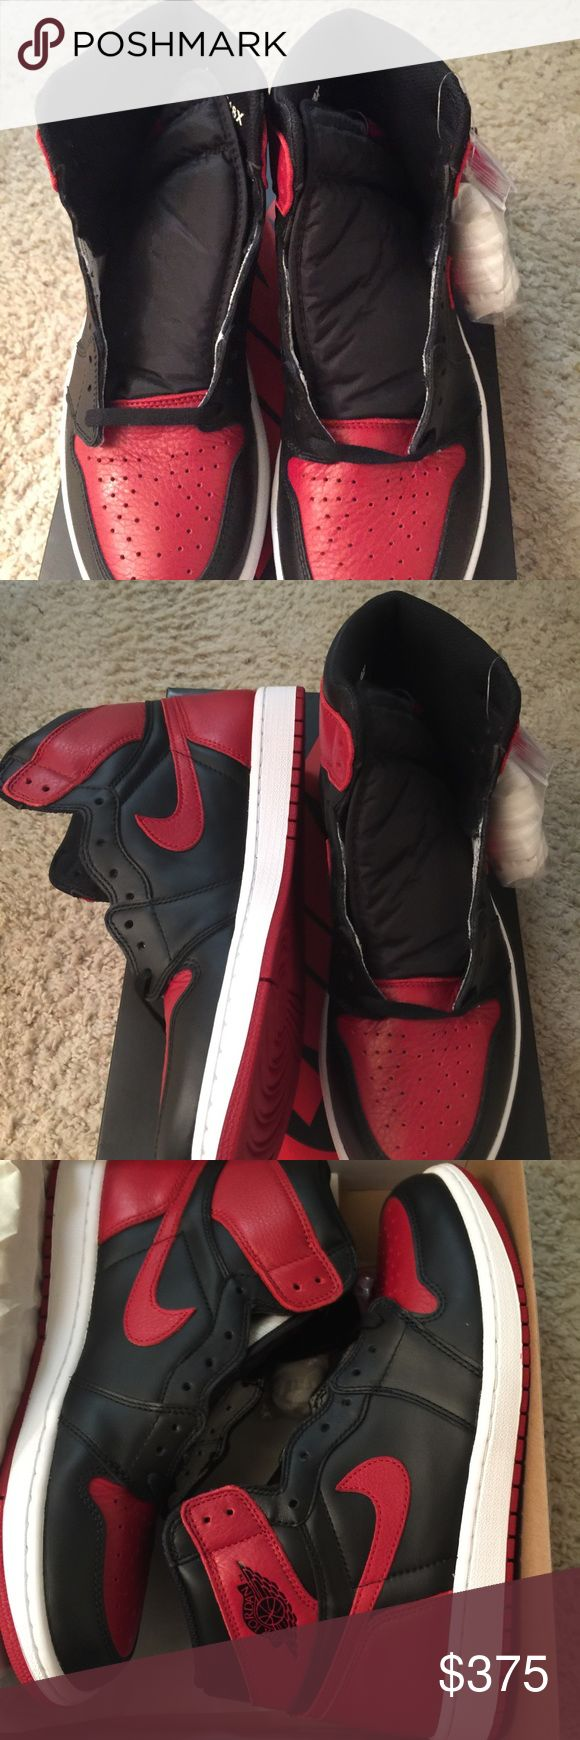 Jordan Chicago 1 red and black size 11 dead stock Jordan Chicago 1 red and black size 11 dead stock Jordan Shoes Athletic Shoes